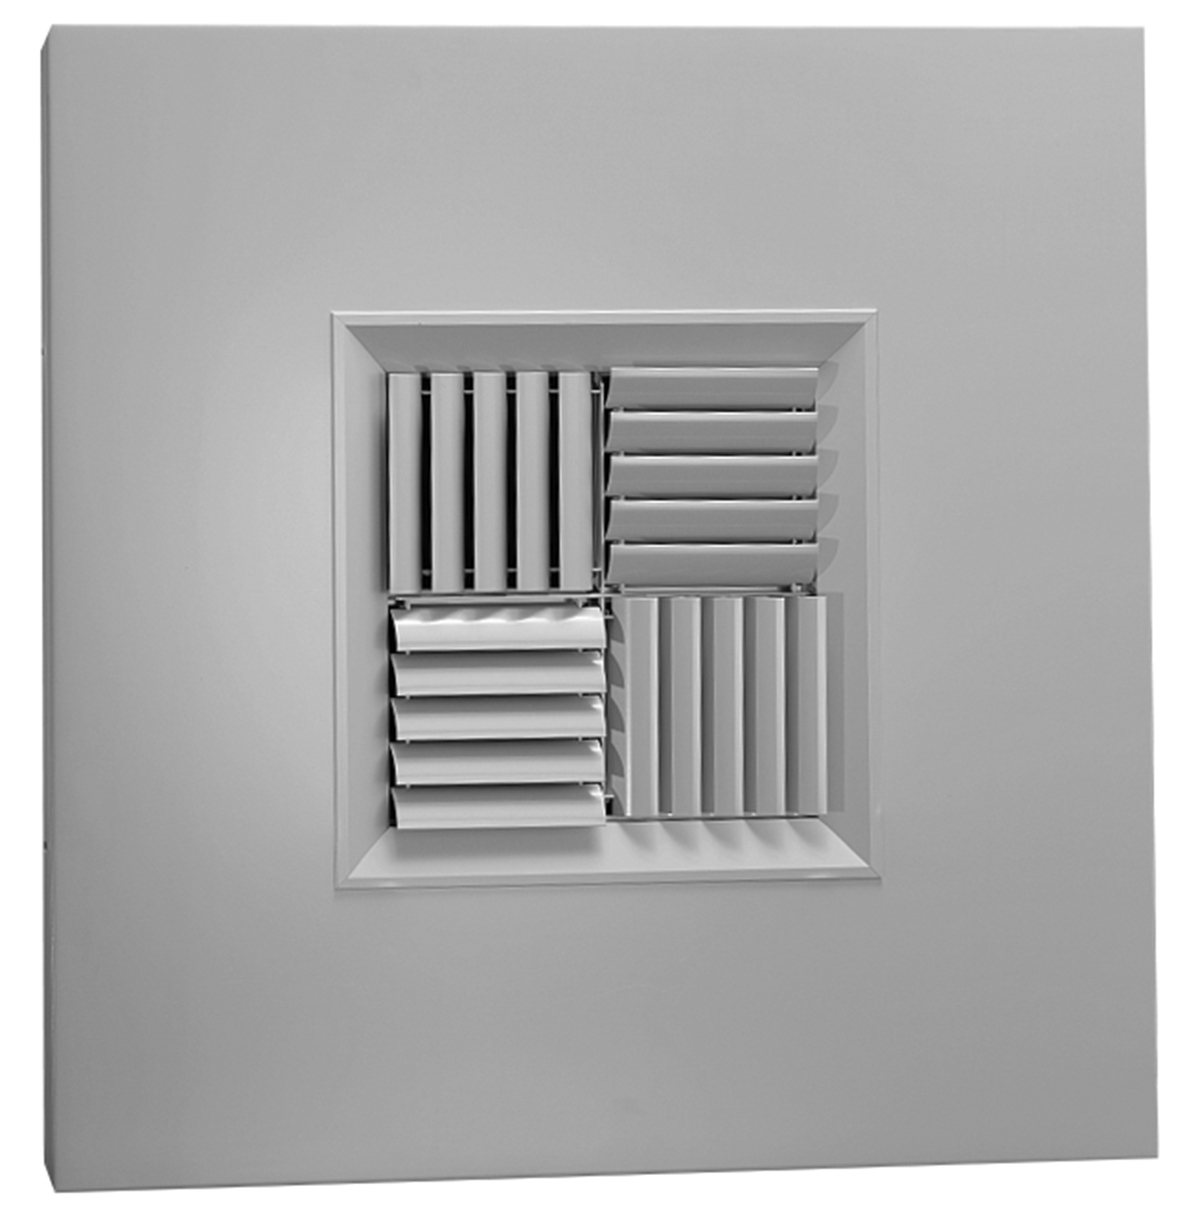 Mcdst Aluminum Modular Core Diffuser In T Bar Panel